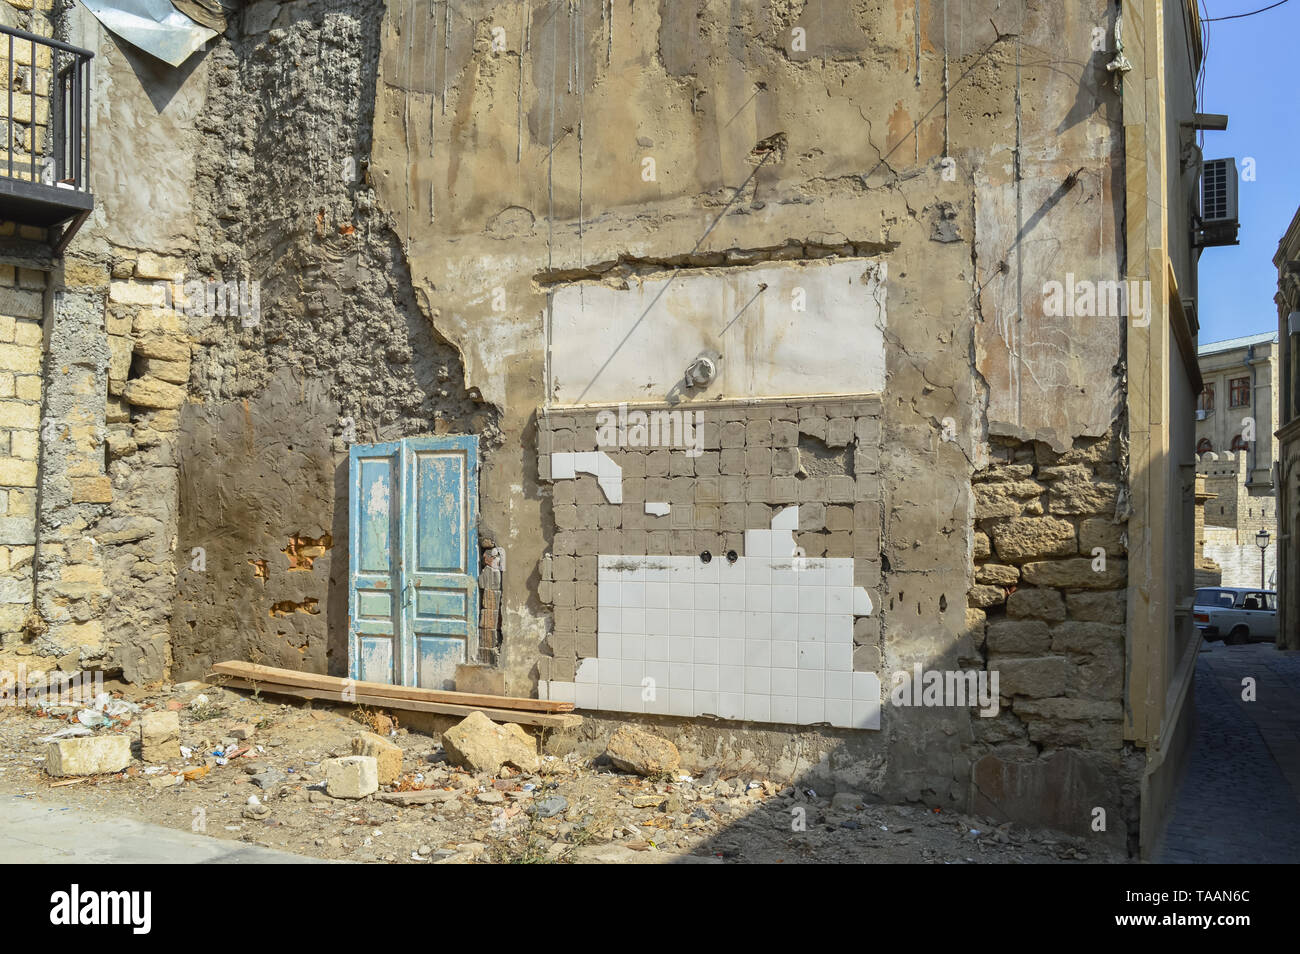 wall of demolished house in old city Baku - Stock Image